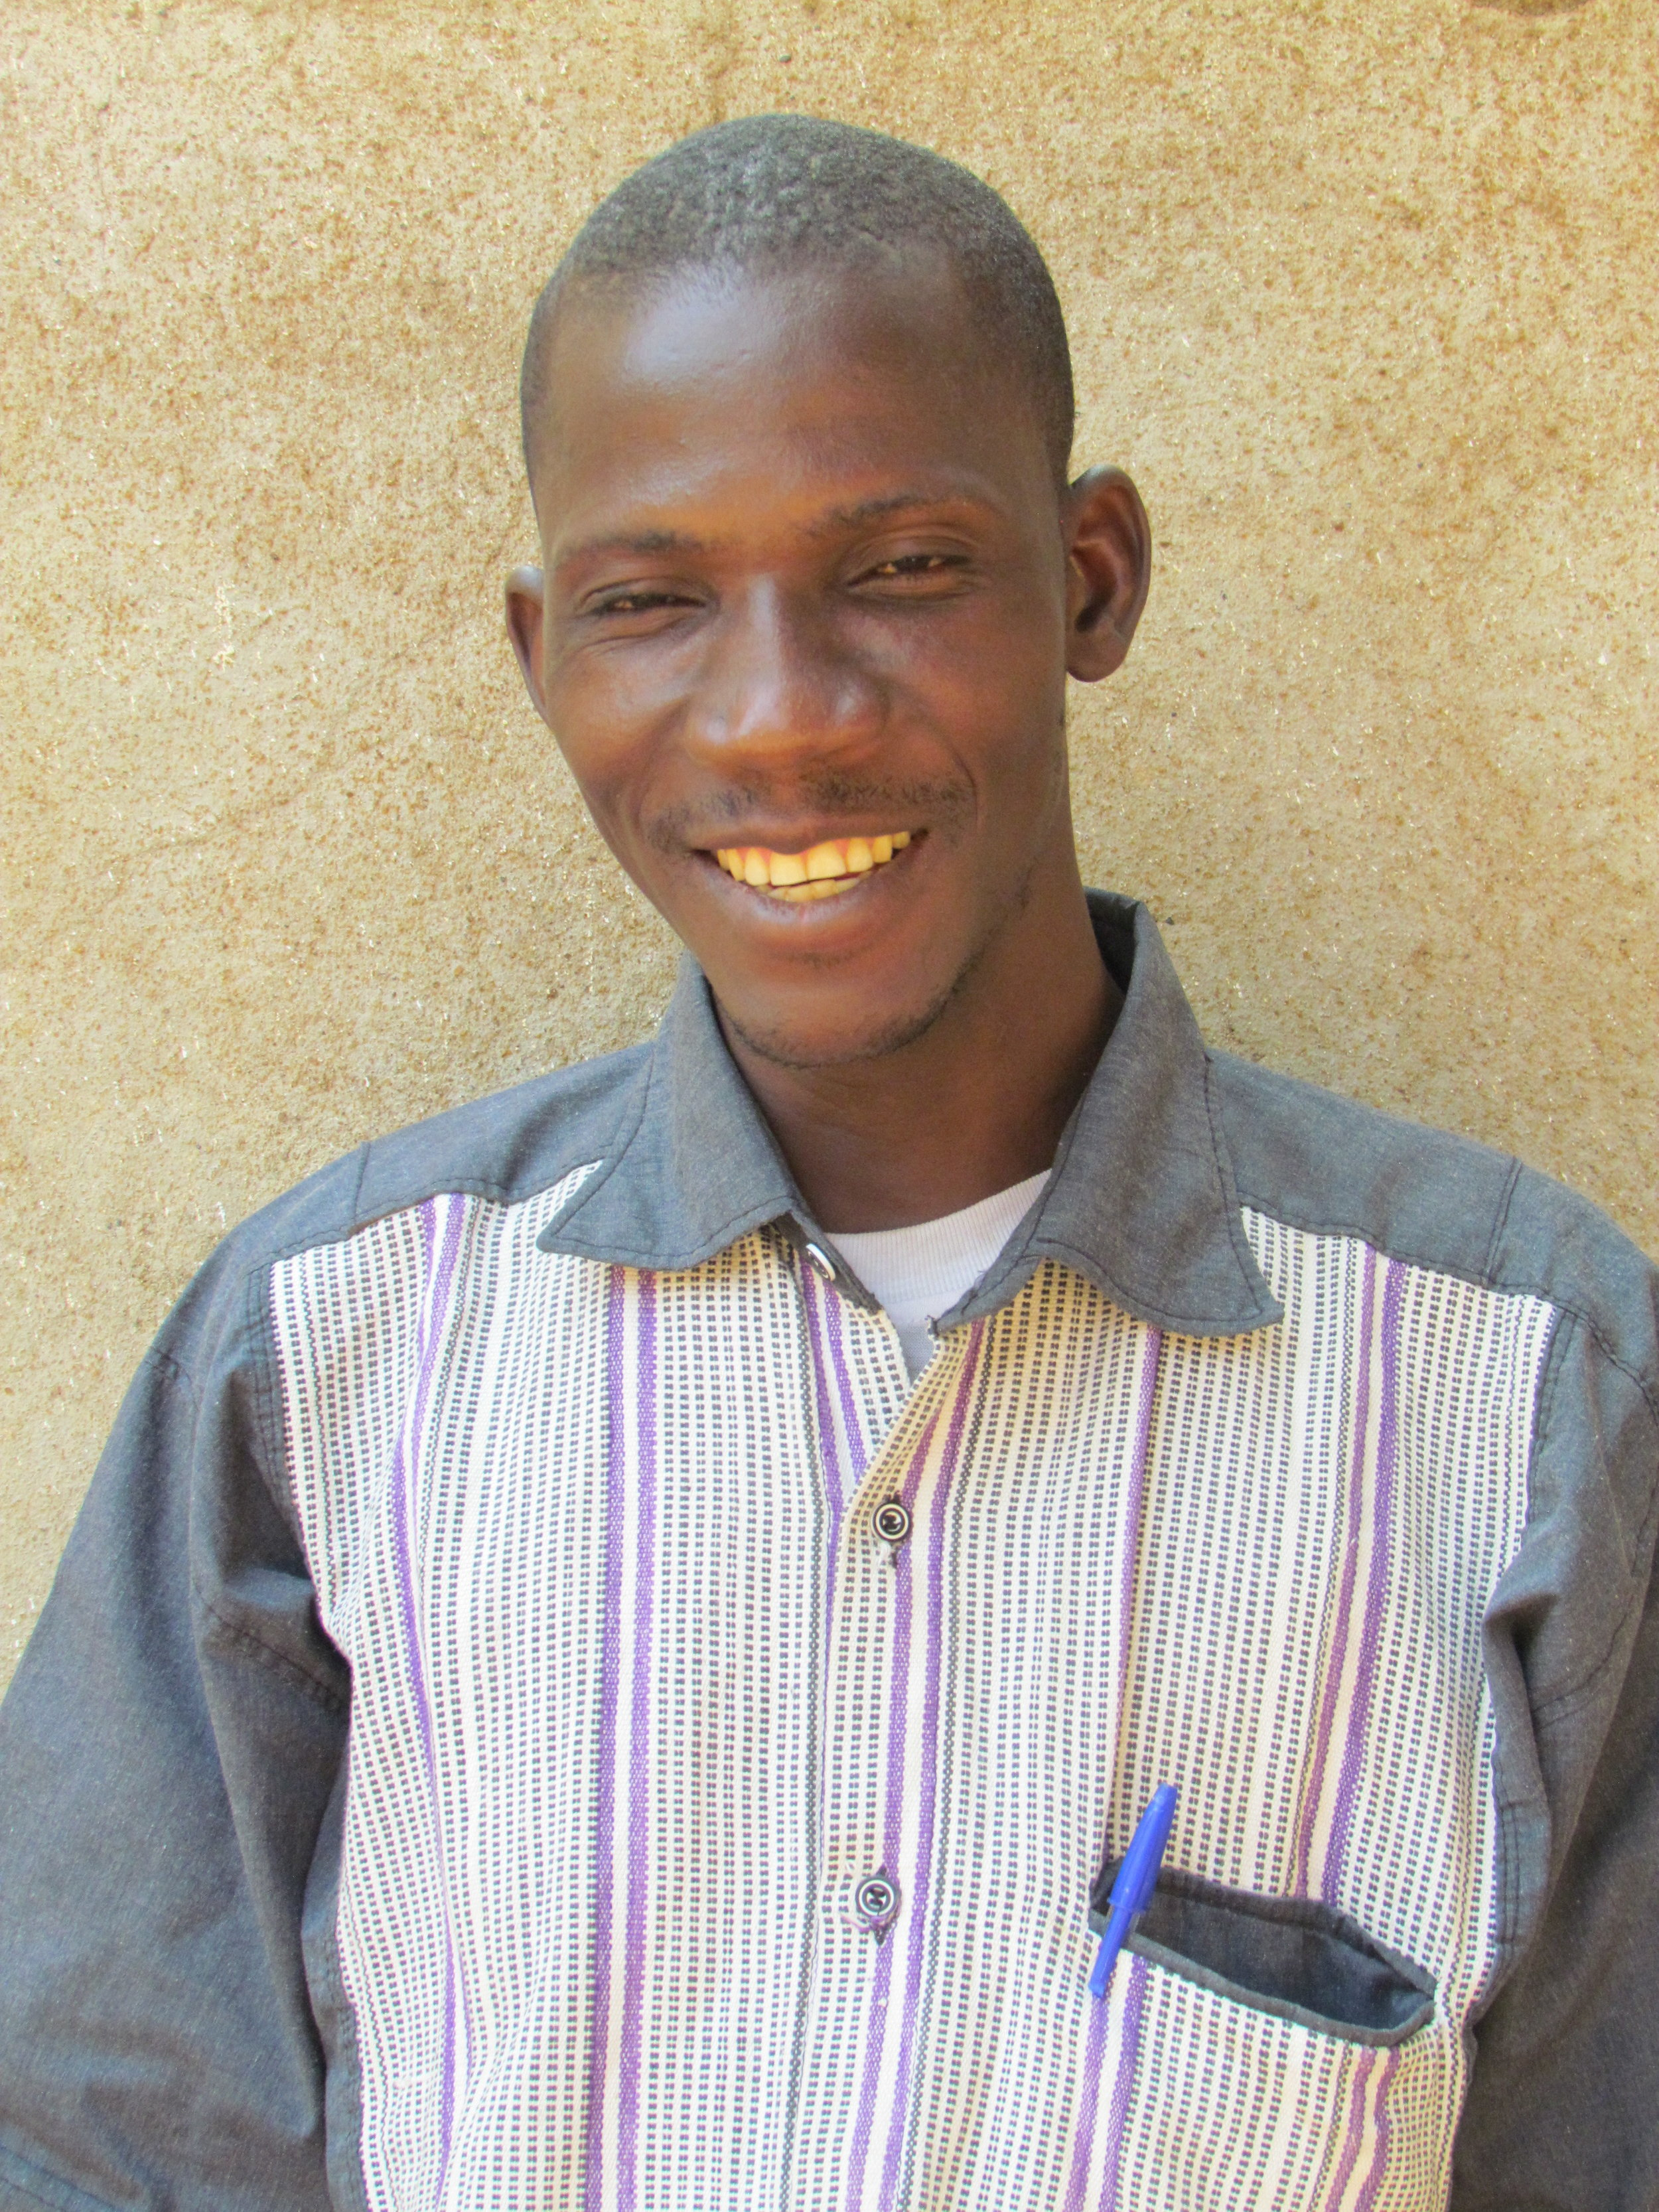 Younissa is using his education to help others get an education!